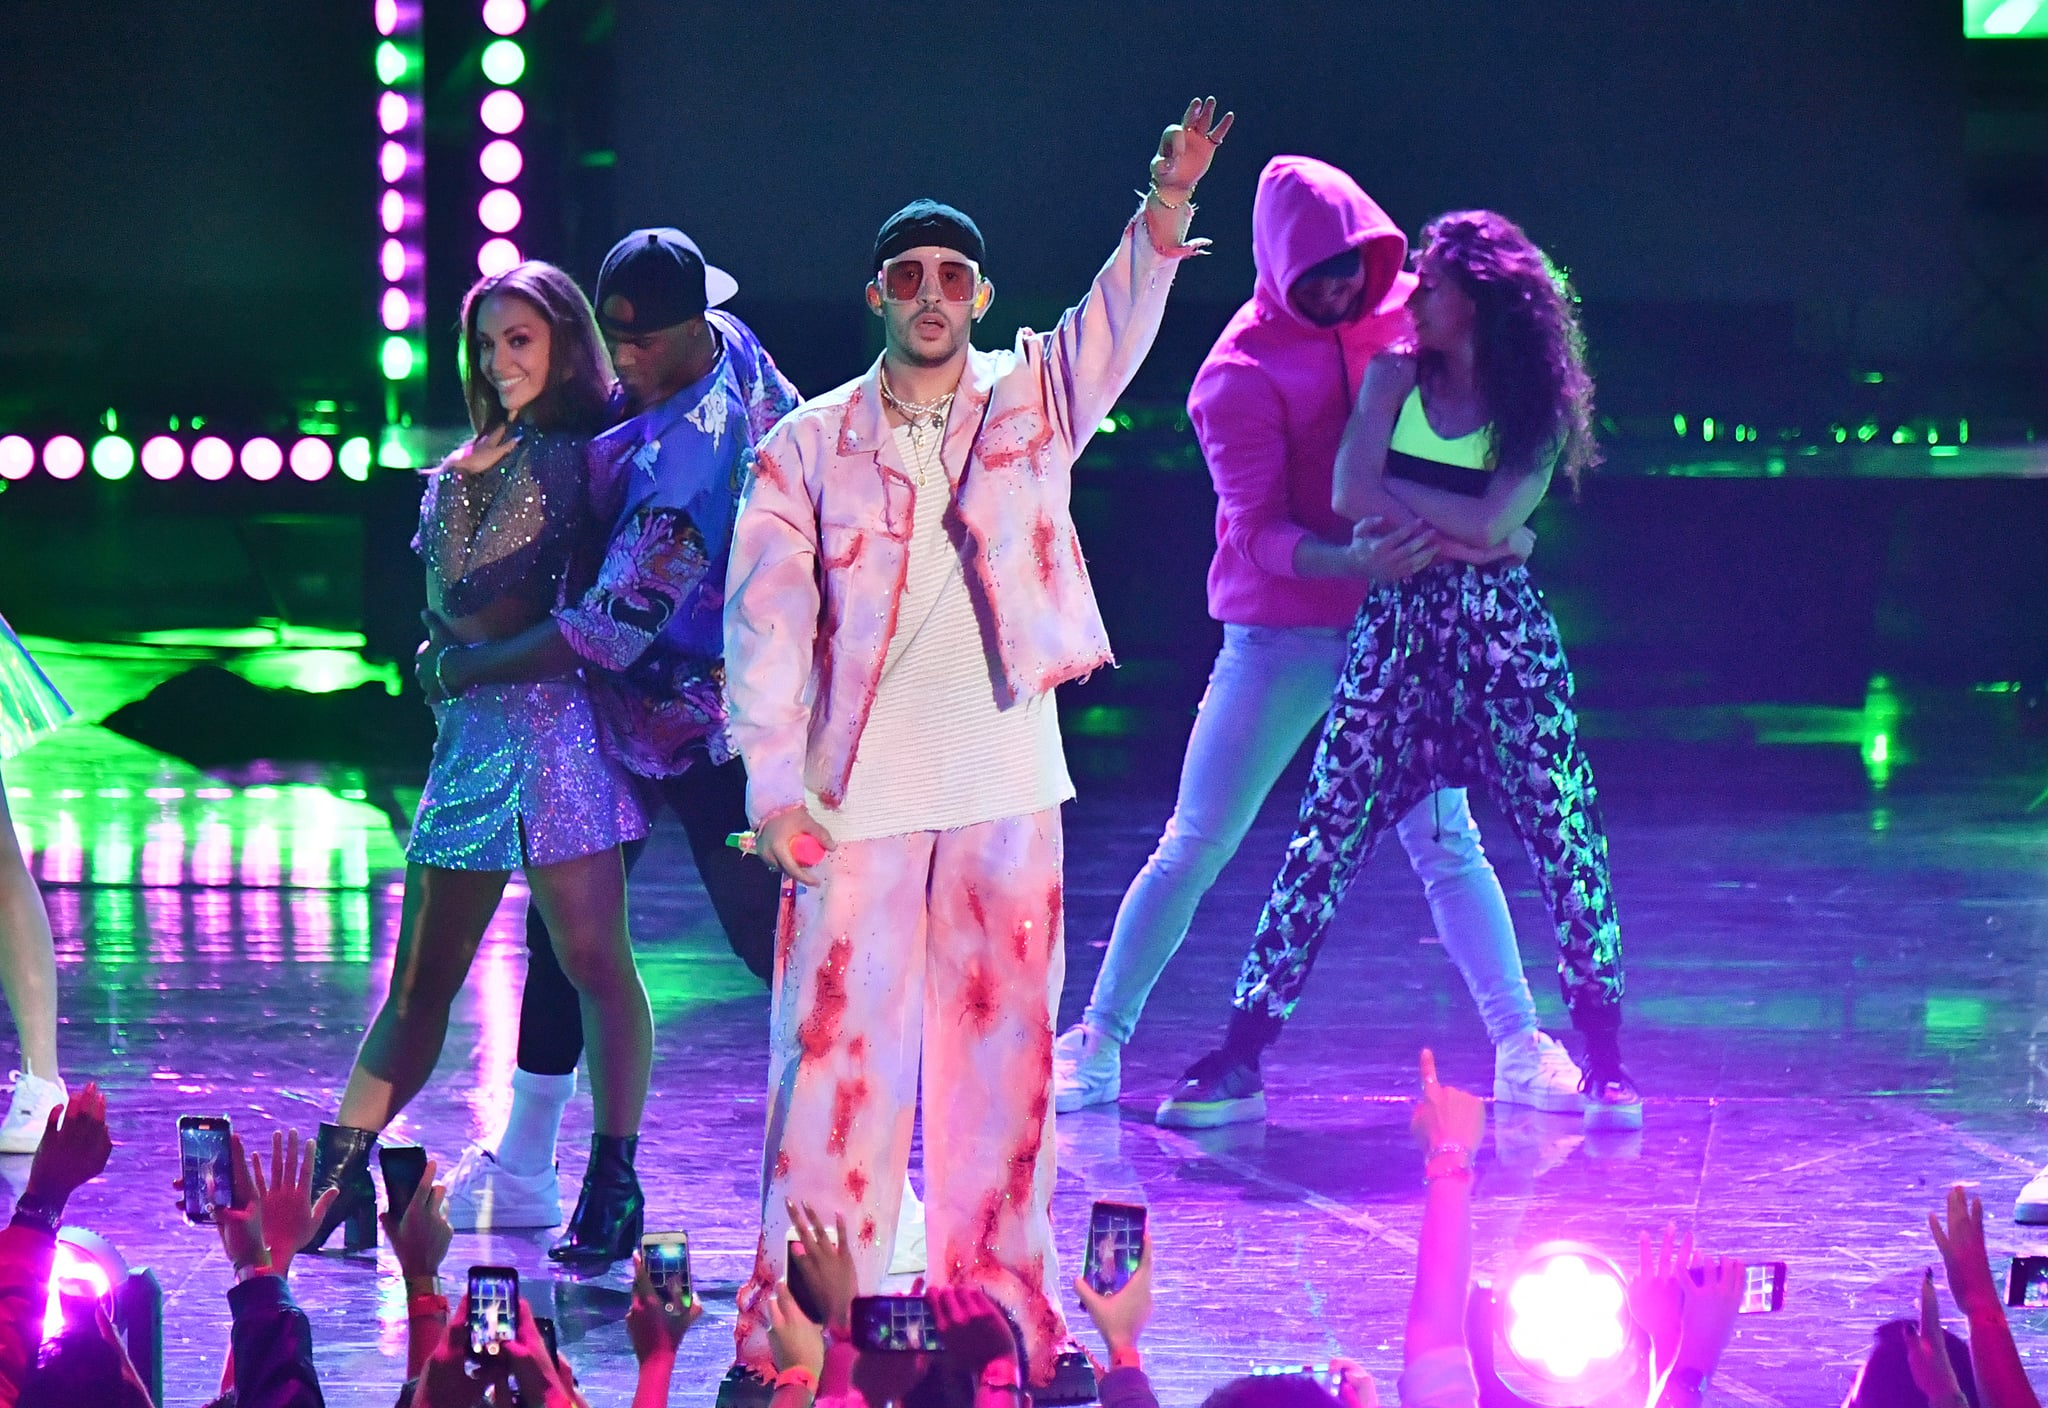 MEXICO CITY, MEXICO - MARCH 05: Bad Bunny performs onstage during the 2020 Spotify Awards at the Auditorio Nacional on March 05, 2020 in Mexico City, Mexico. (Photo by Emma McIntyre/Getty Images for Spotify)